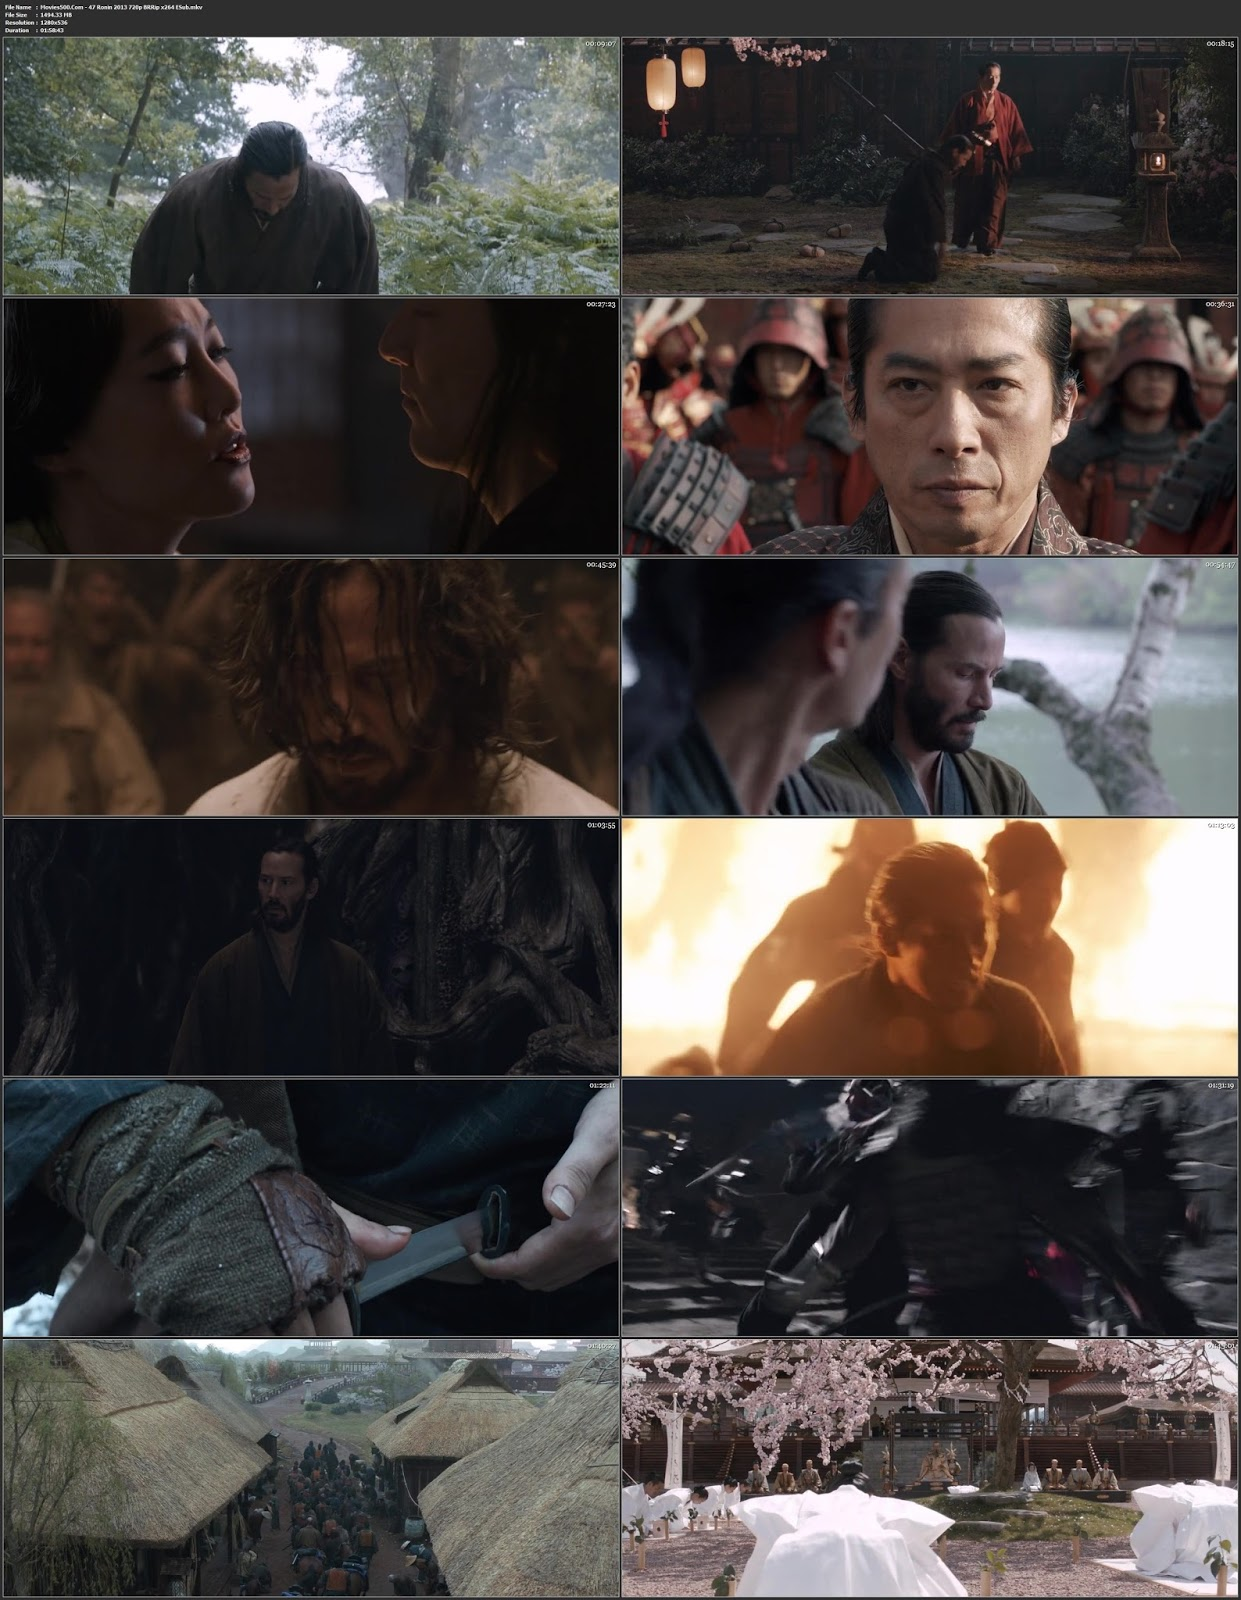 47 Ronin 2013 Dual Audio Hindi Full Movie BluRay 720p at lanstream.uk